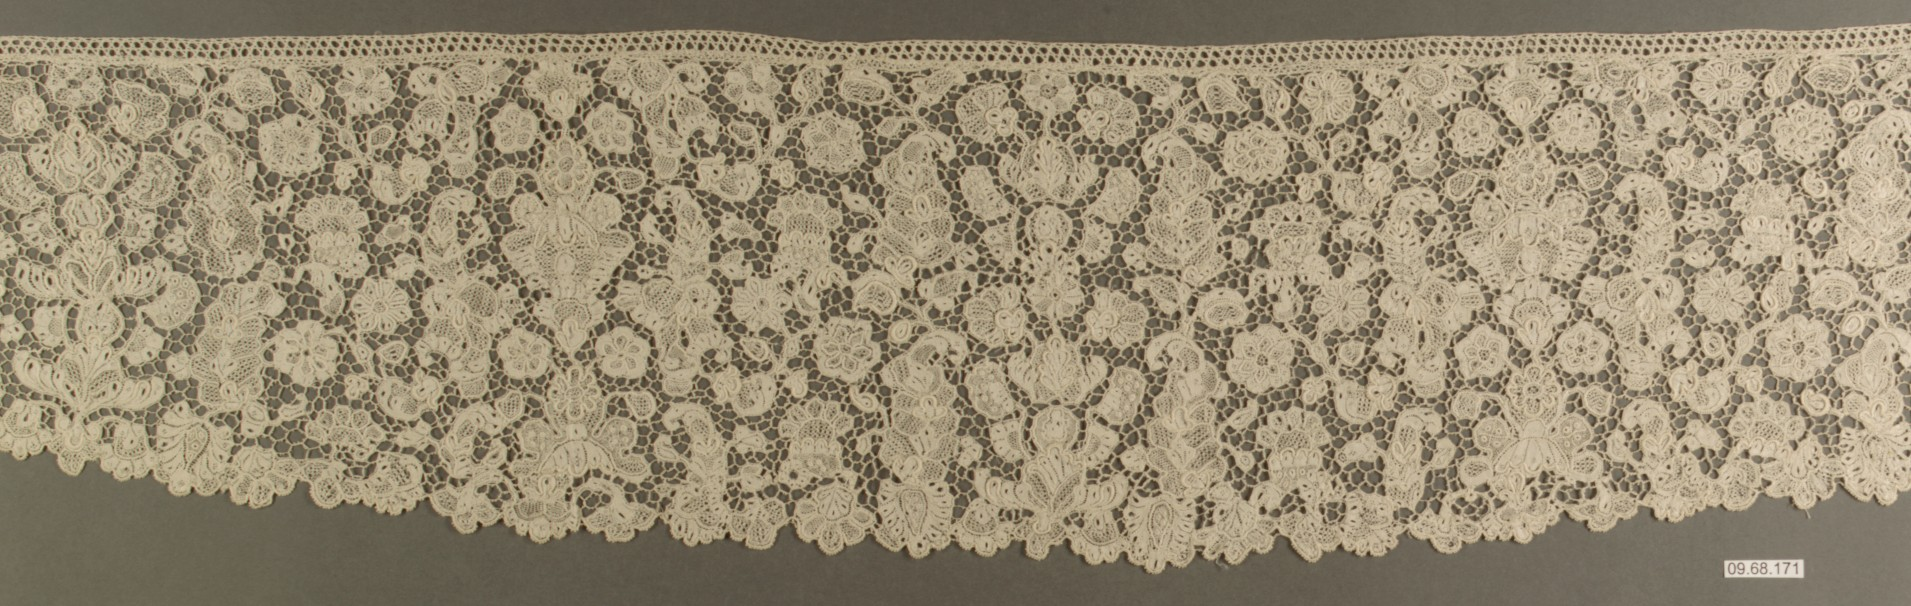 Sleeve trimming (Engageantes), 18th century, Italian, Venice, Needle lace, L. 35 x W. 5 1:2 inches (88.9 x 14.0 cm), Metropolitan Museum of Art, 09.68.171